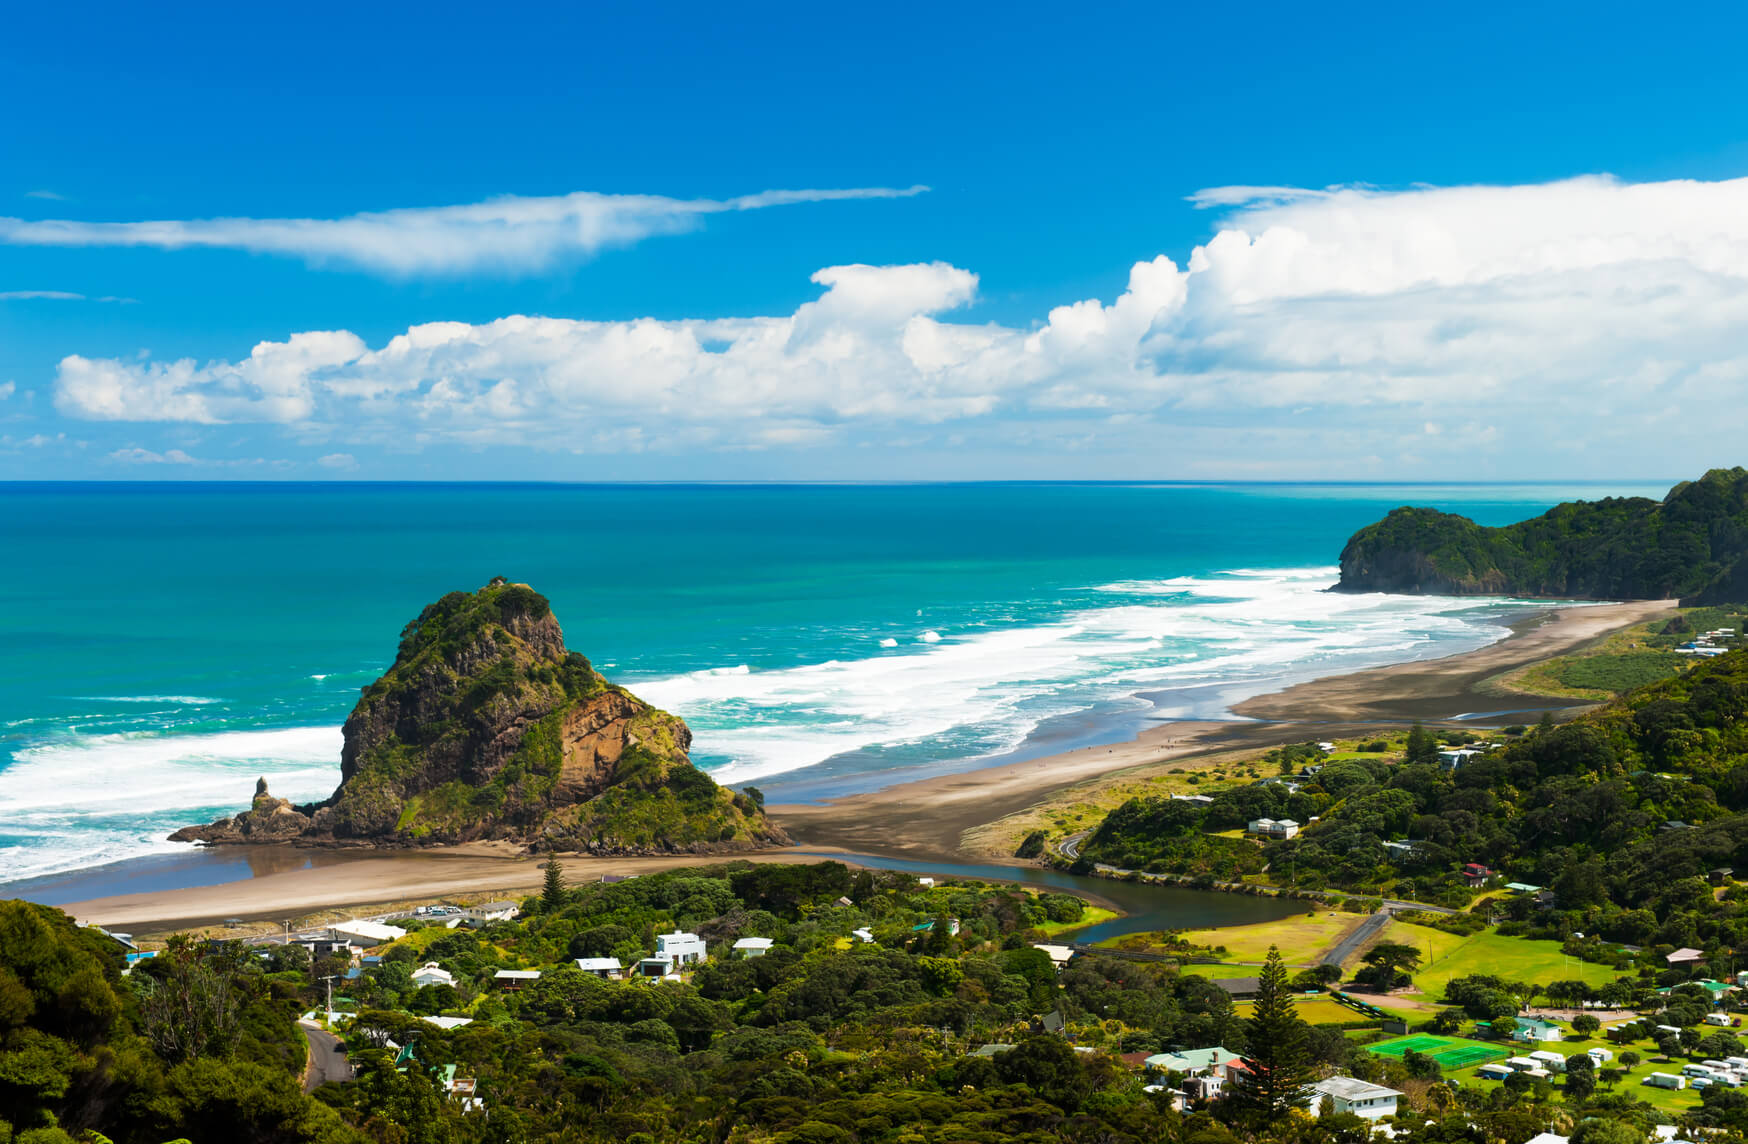 San Francisco to Auckland, New Zealand for only $684 roundtrip